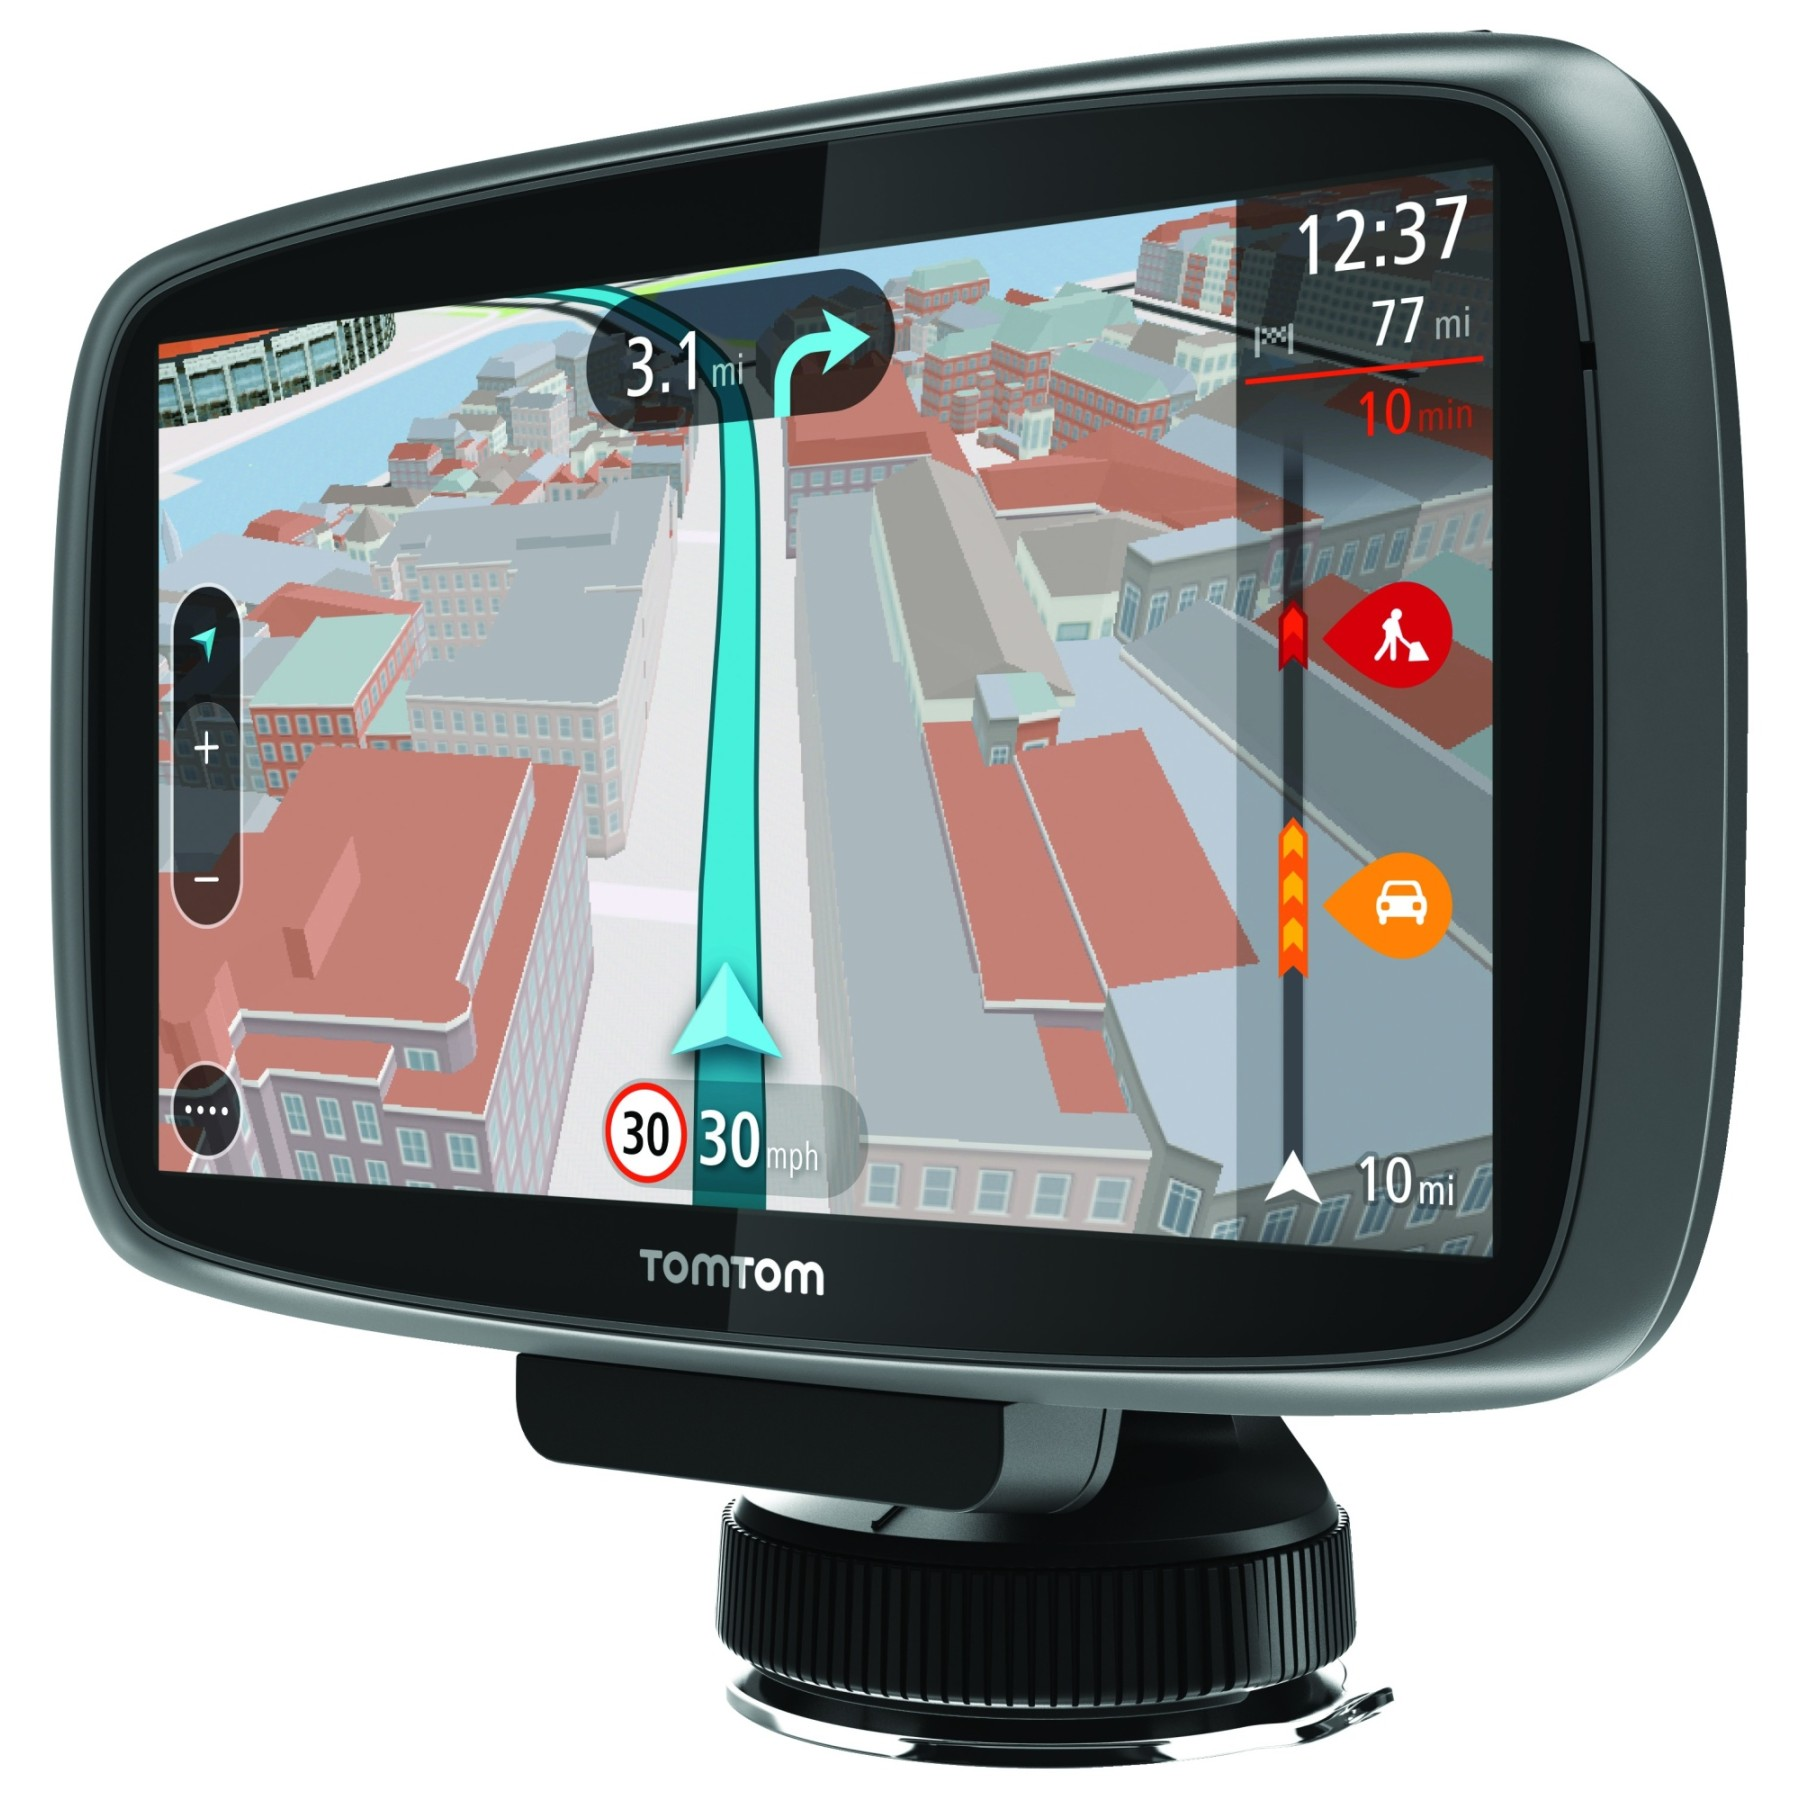 tomtom go 6000 european maps live traffic 6 capacitive touch screen new ebay. Black Bedroom Furniture Sets. Home Design Ideas